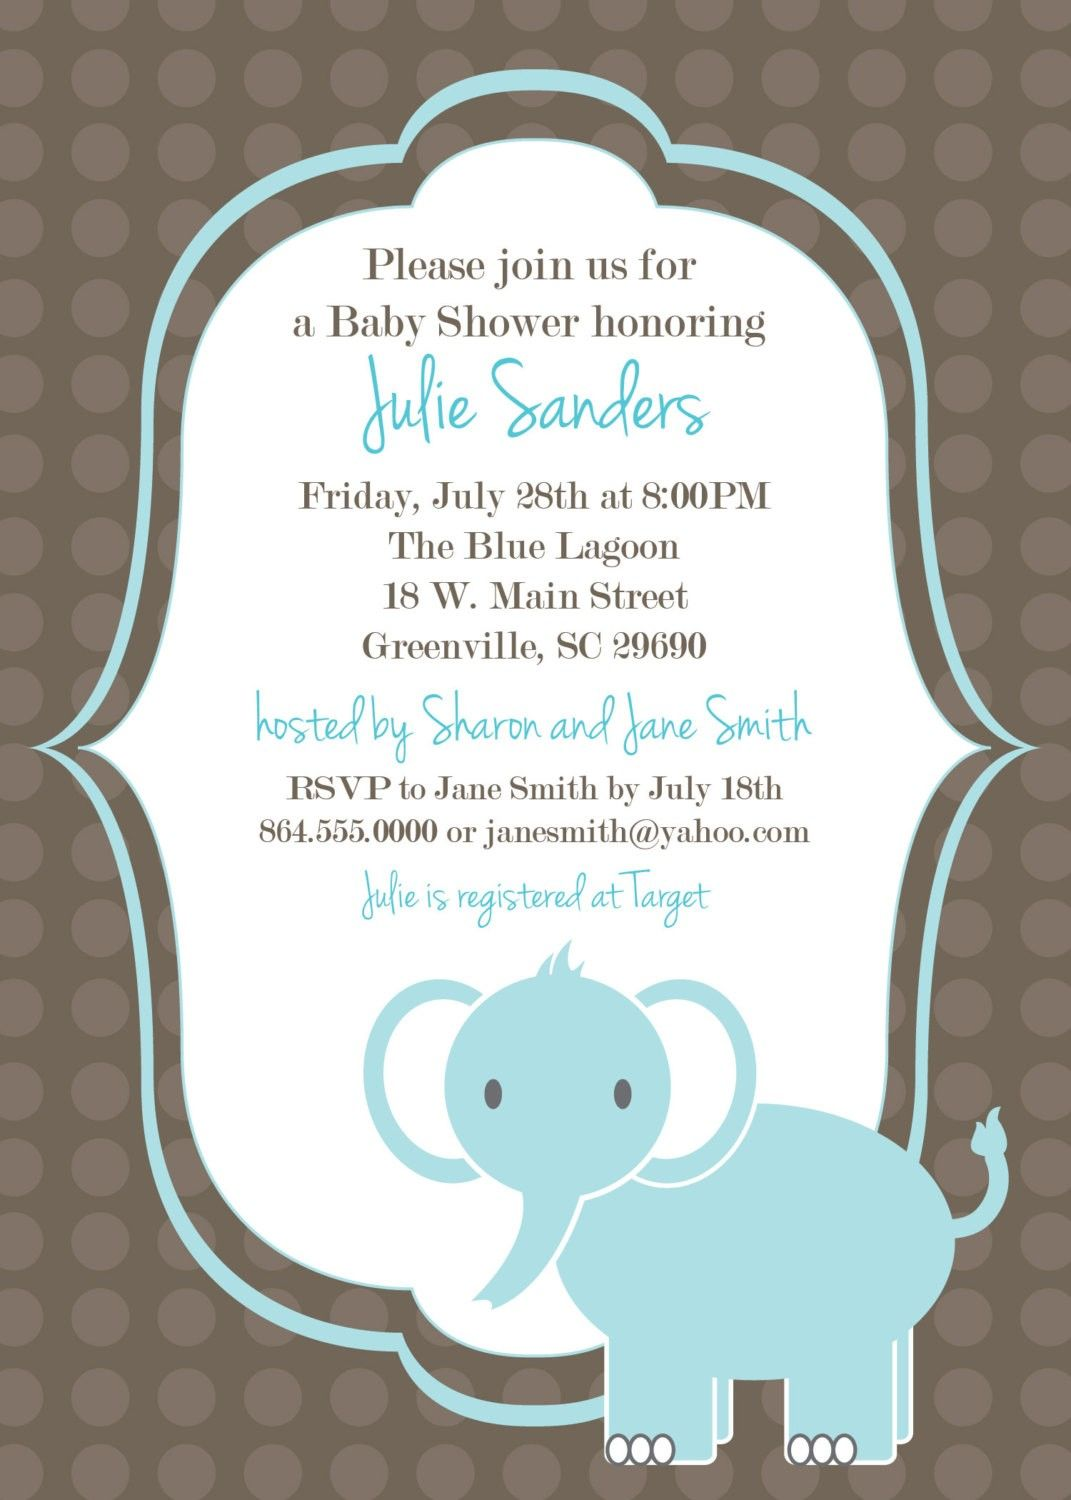 Delightful Download FREE Template Got The Free Baby Shower Invitations For Baby Shower Invite Template Free